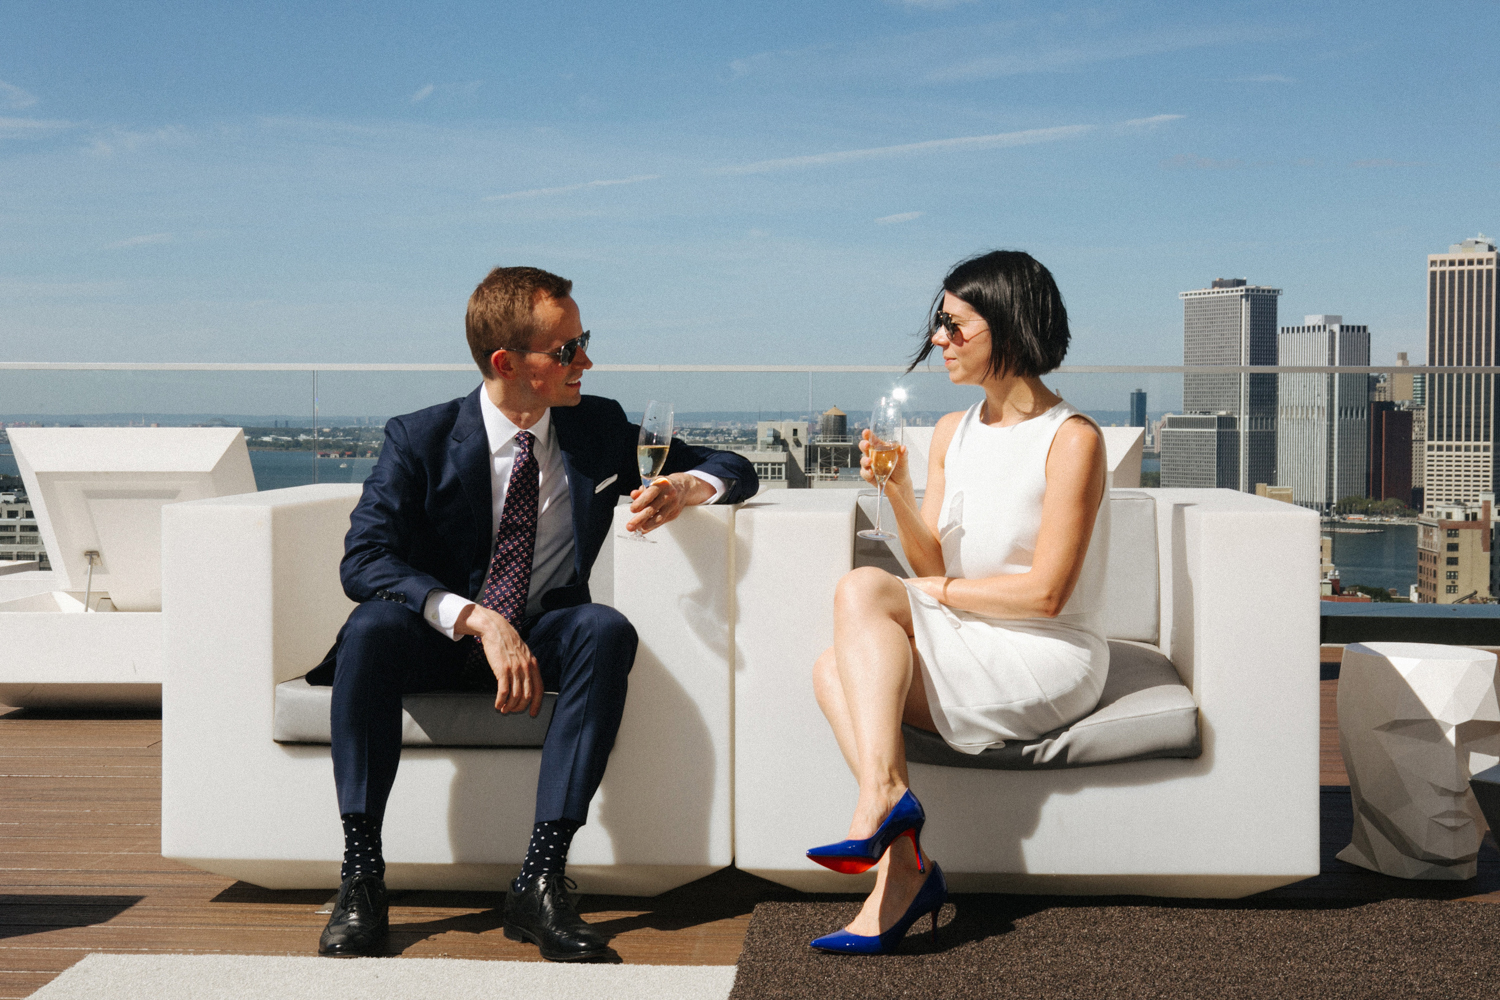 Chic bride and groom sip champagne while overlooking Manhattan.